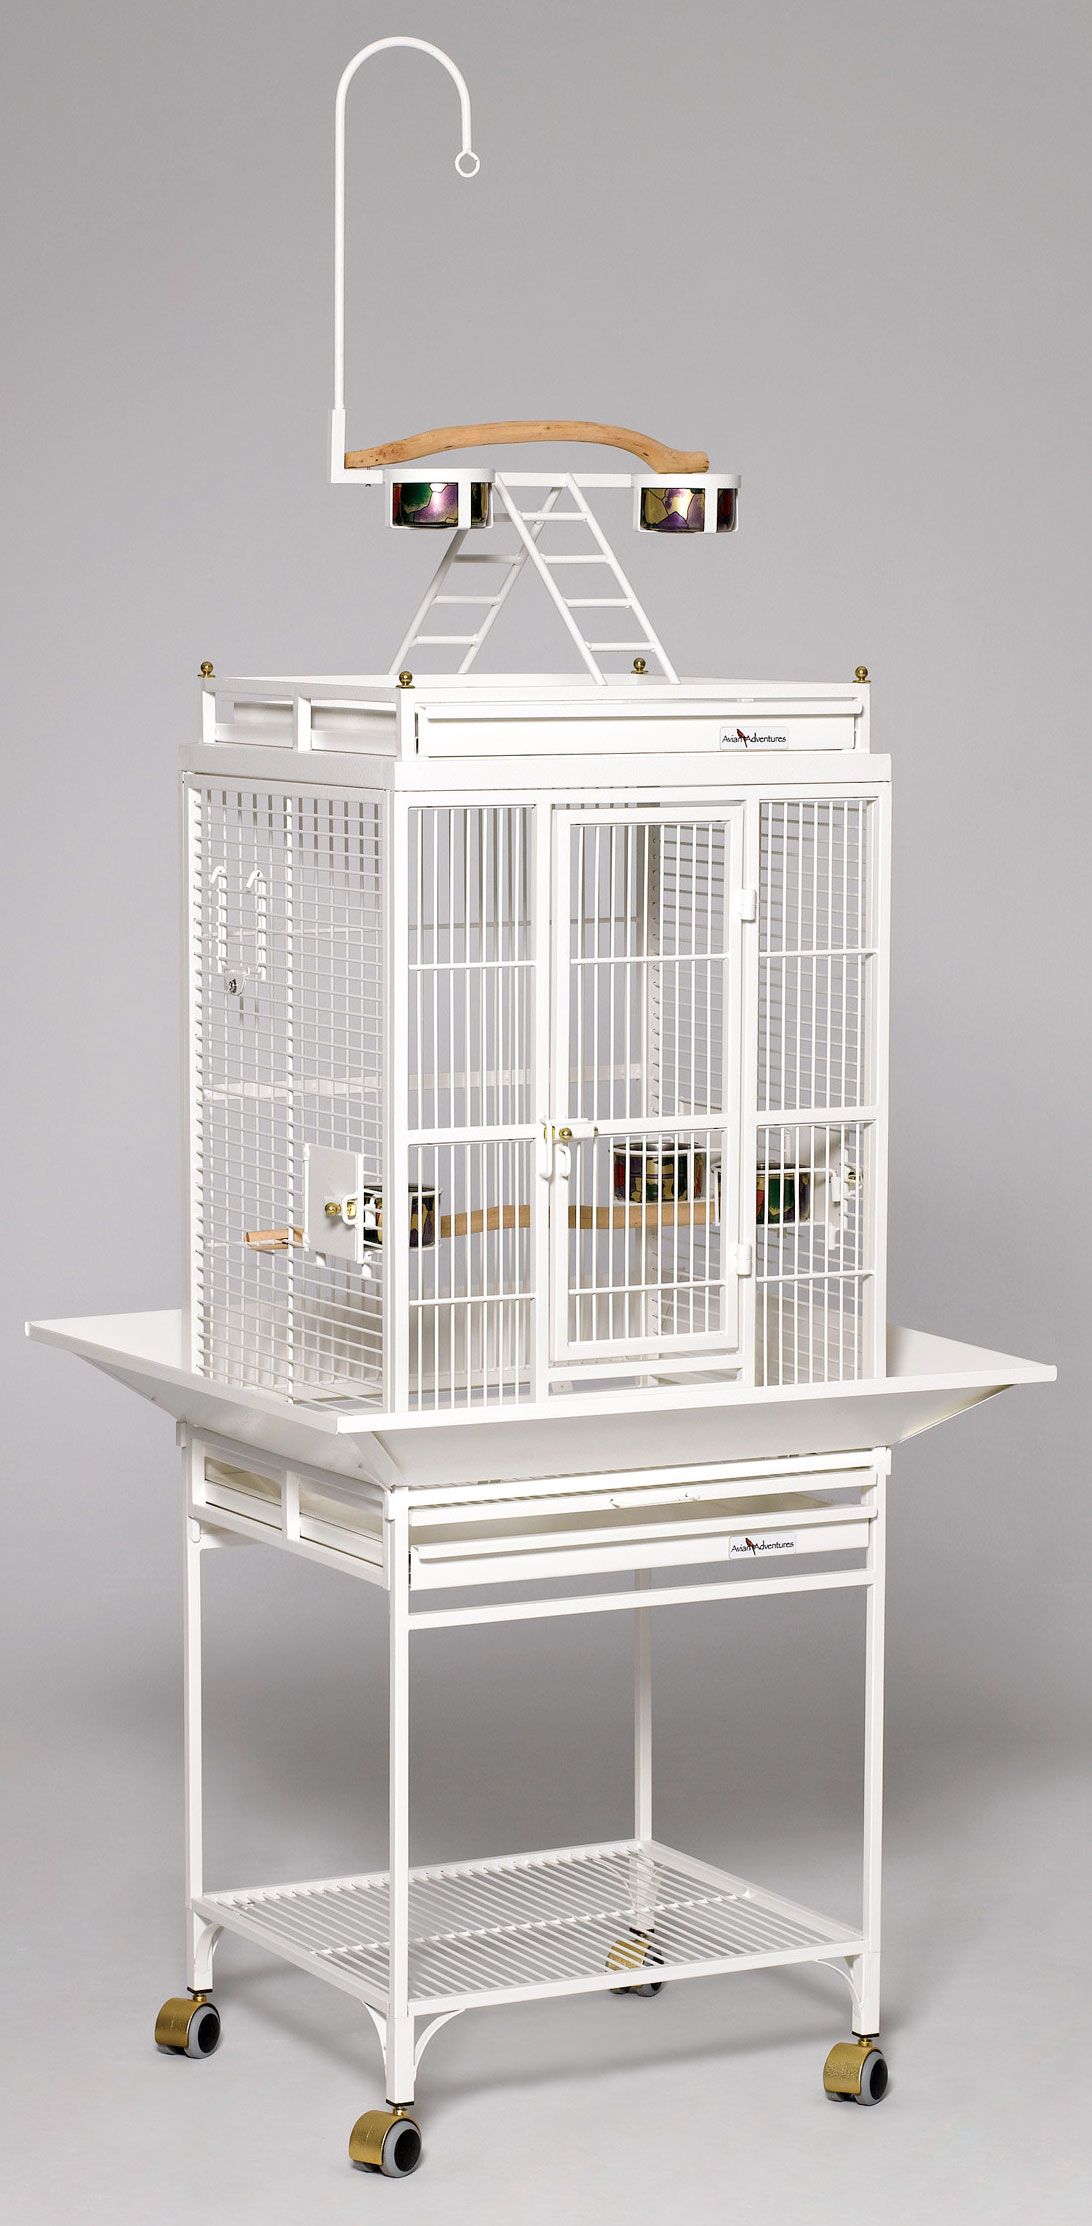 Hq Small Play Top Bird Cage 18x18 By Birdscomfort Com